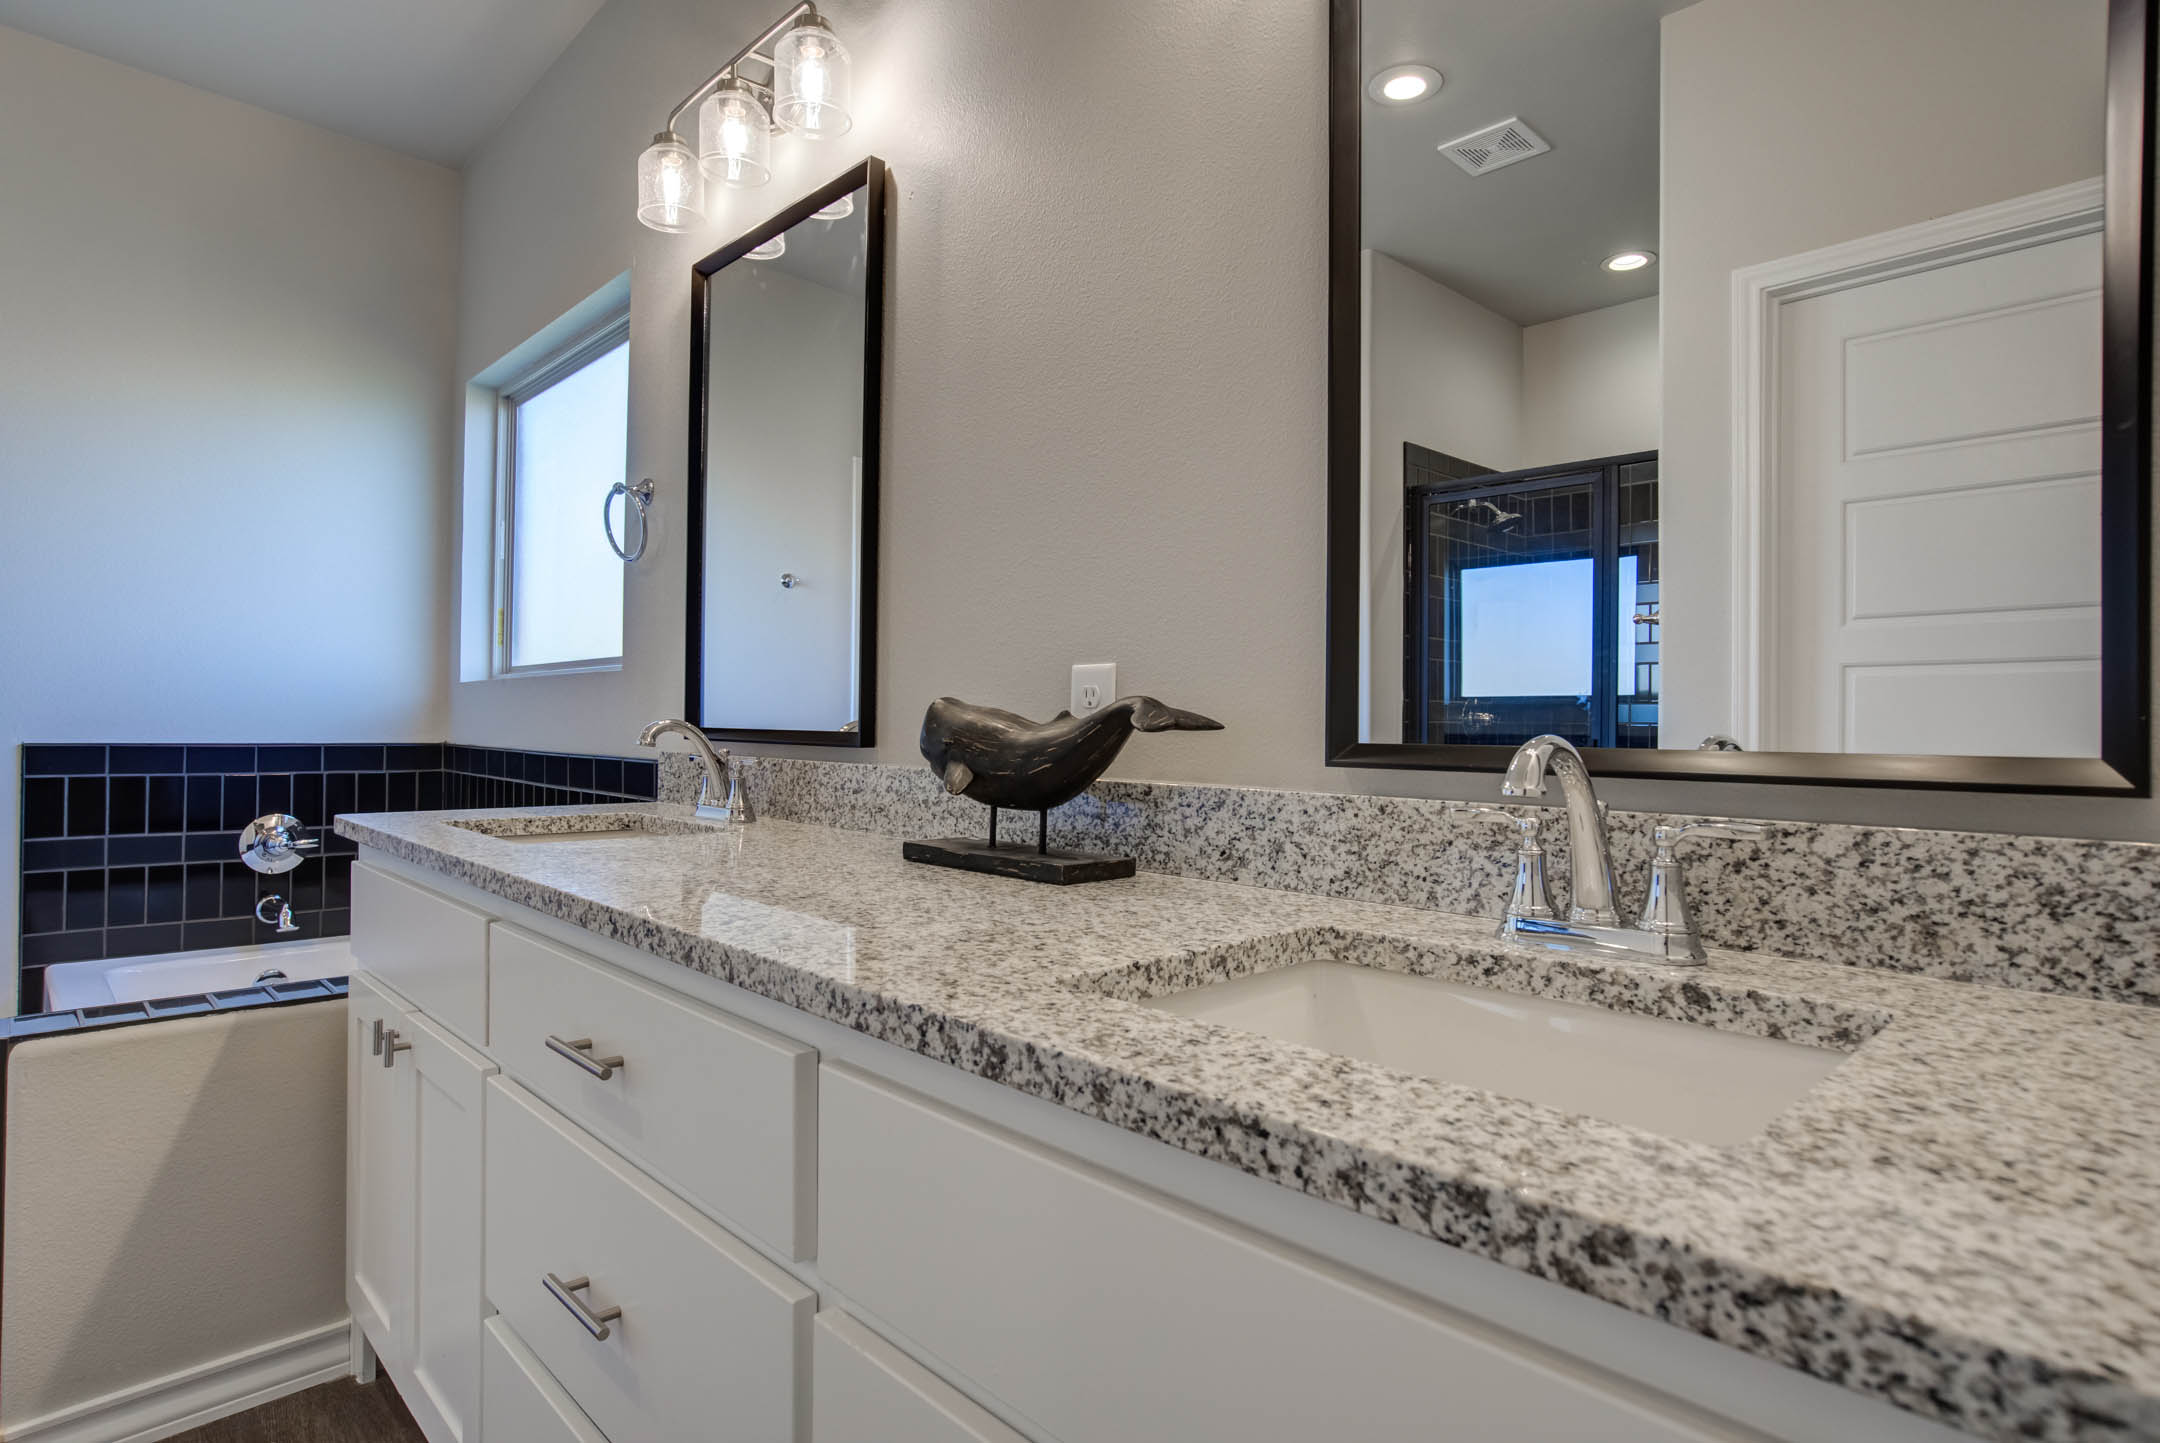 Spacious vanities in master bath of new home for sale in Lubbock.